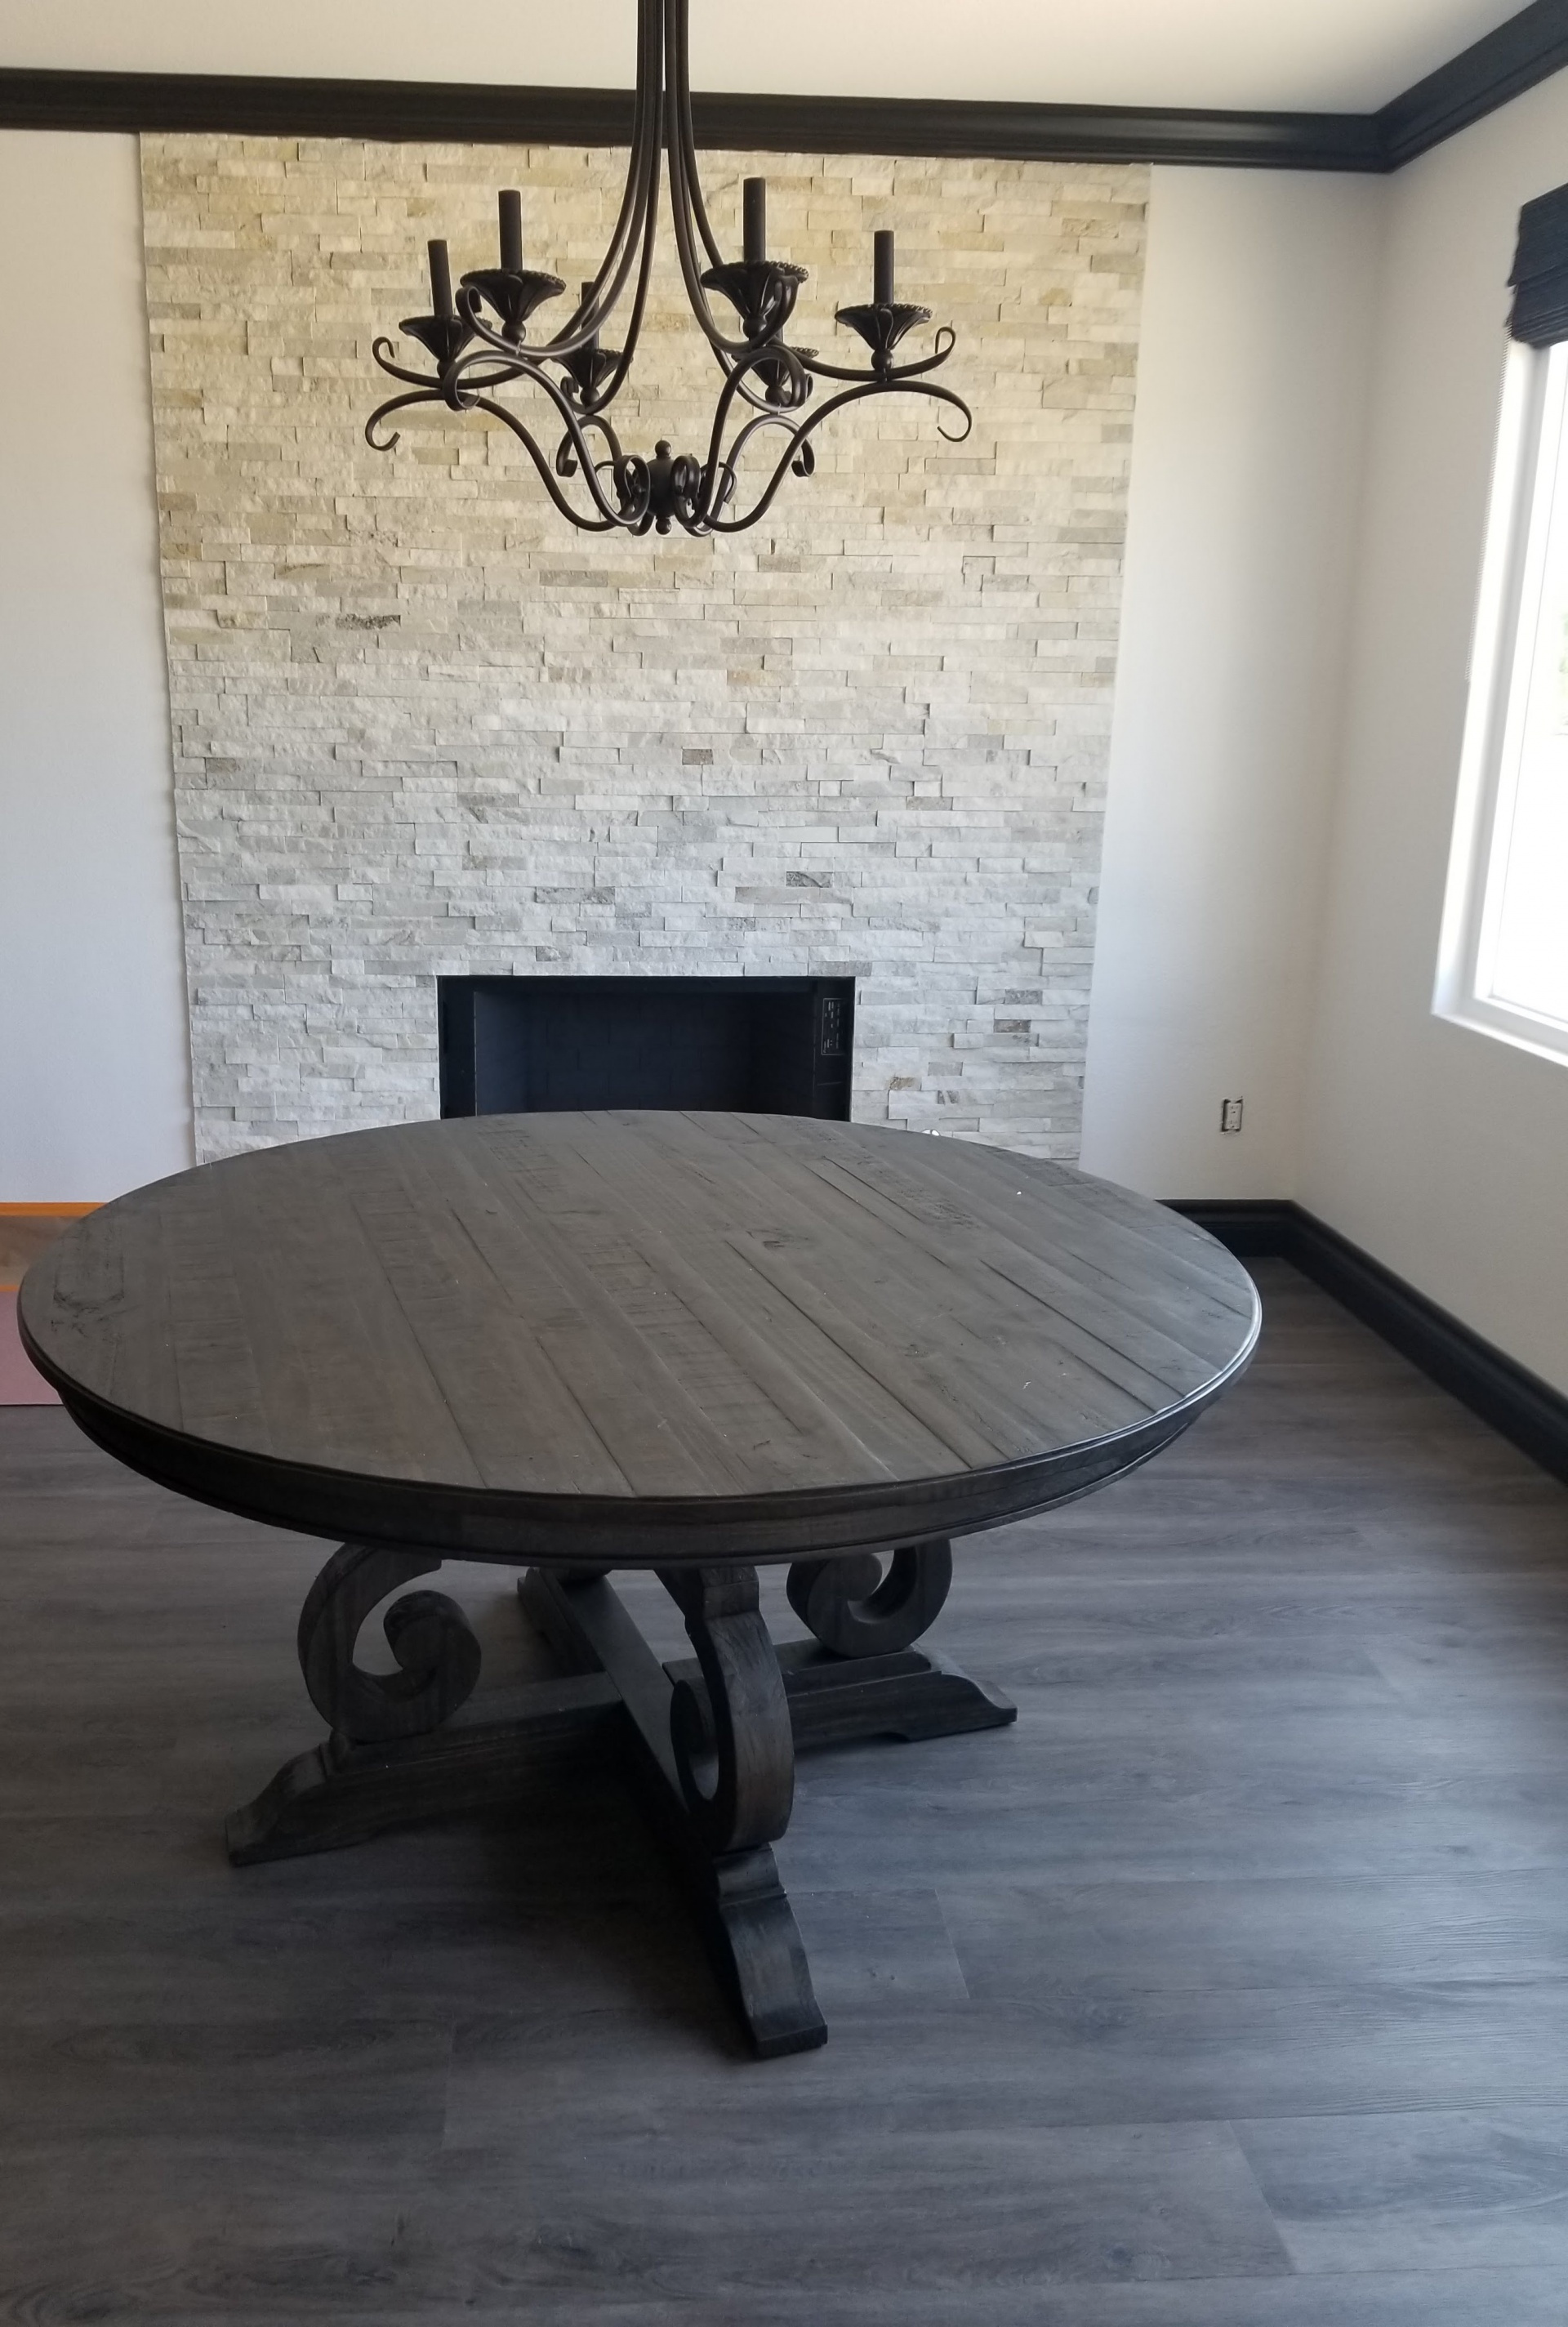 Stock stone on fireplace and  Prime Shades of Grey on the floor